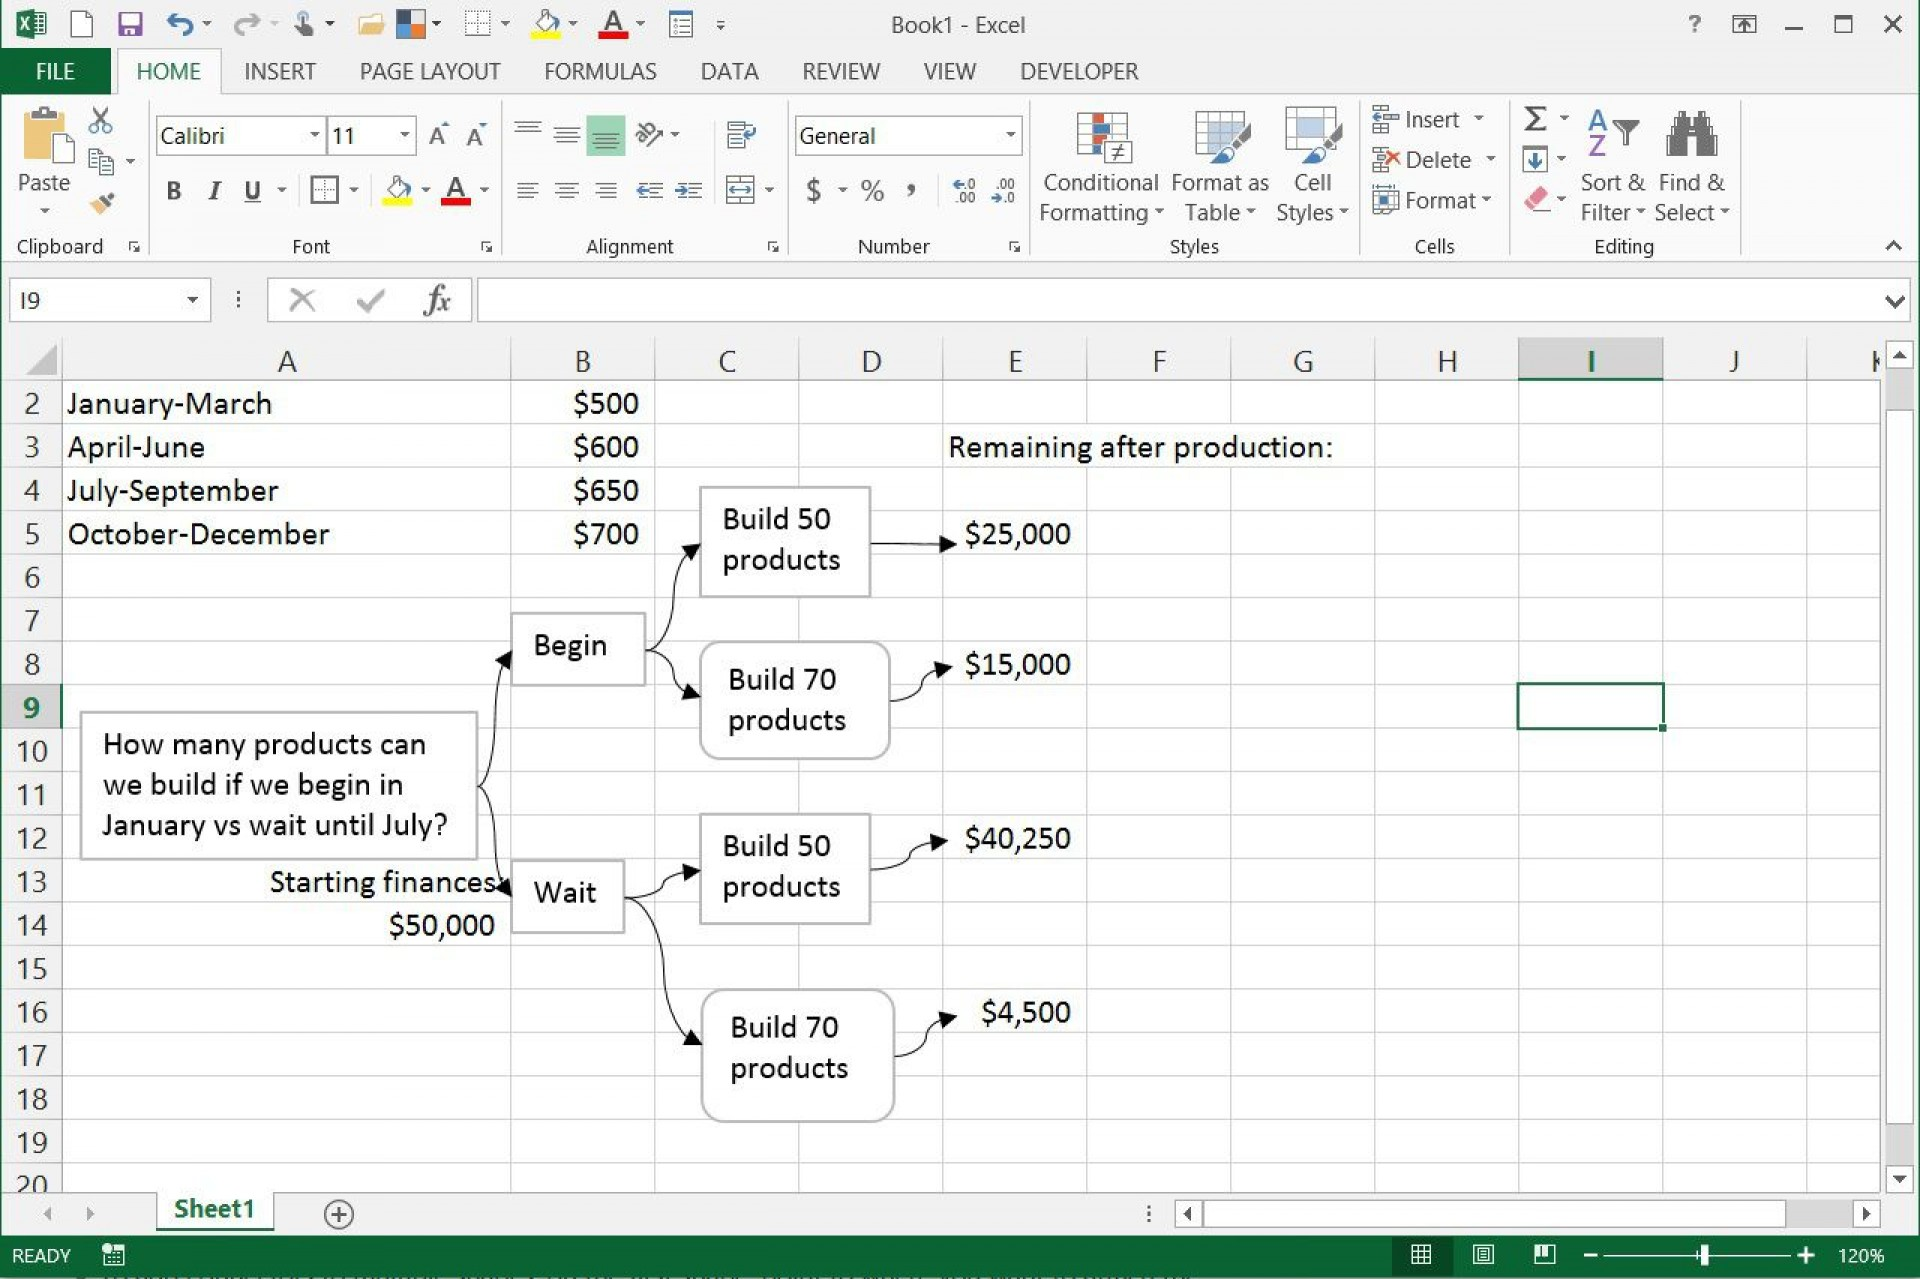 000 Archaicawful Decision Tree Template Excel Free Sample  In Word Or1920